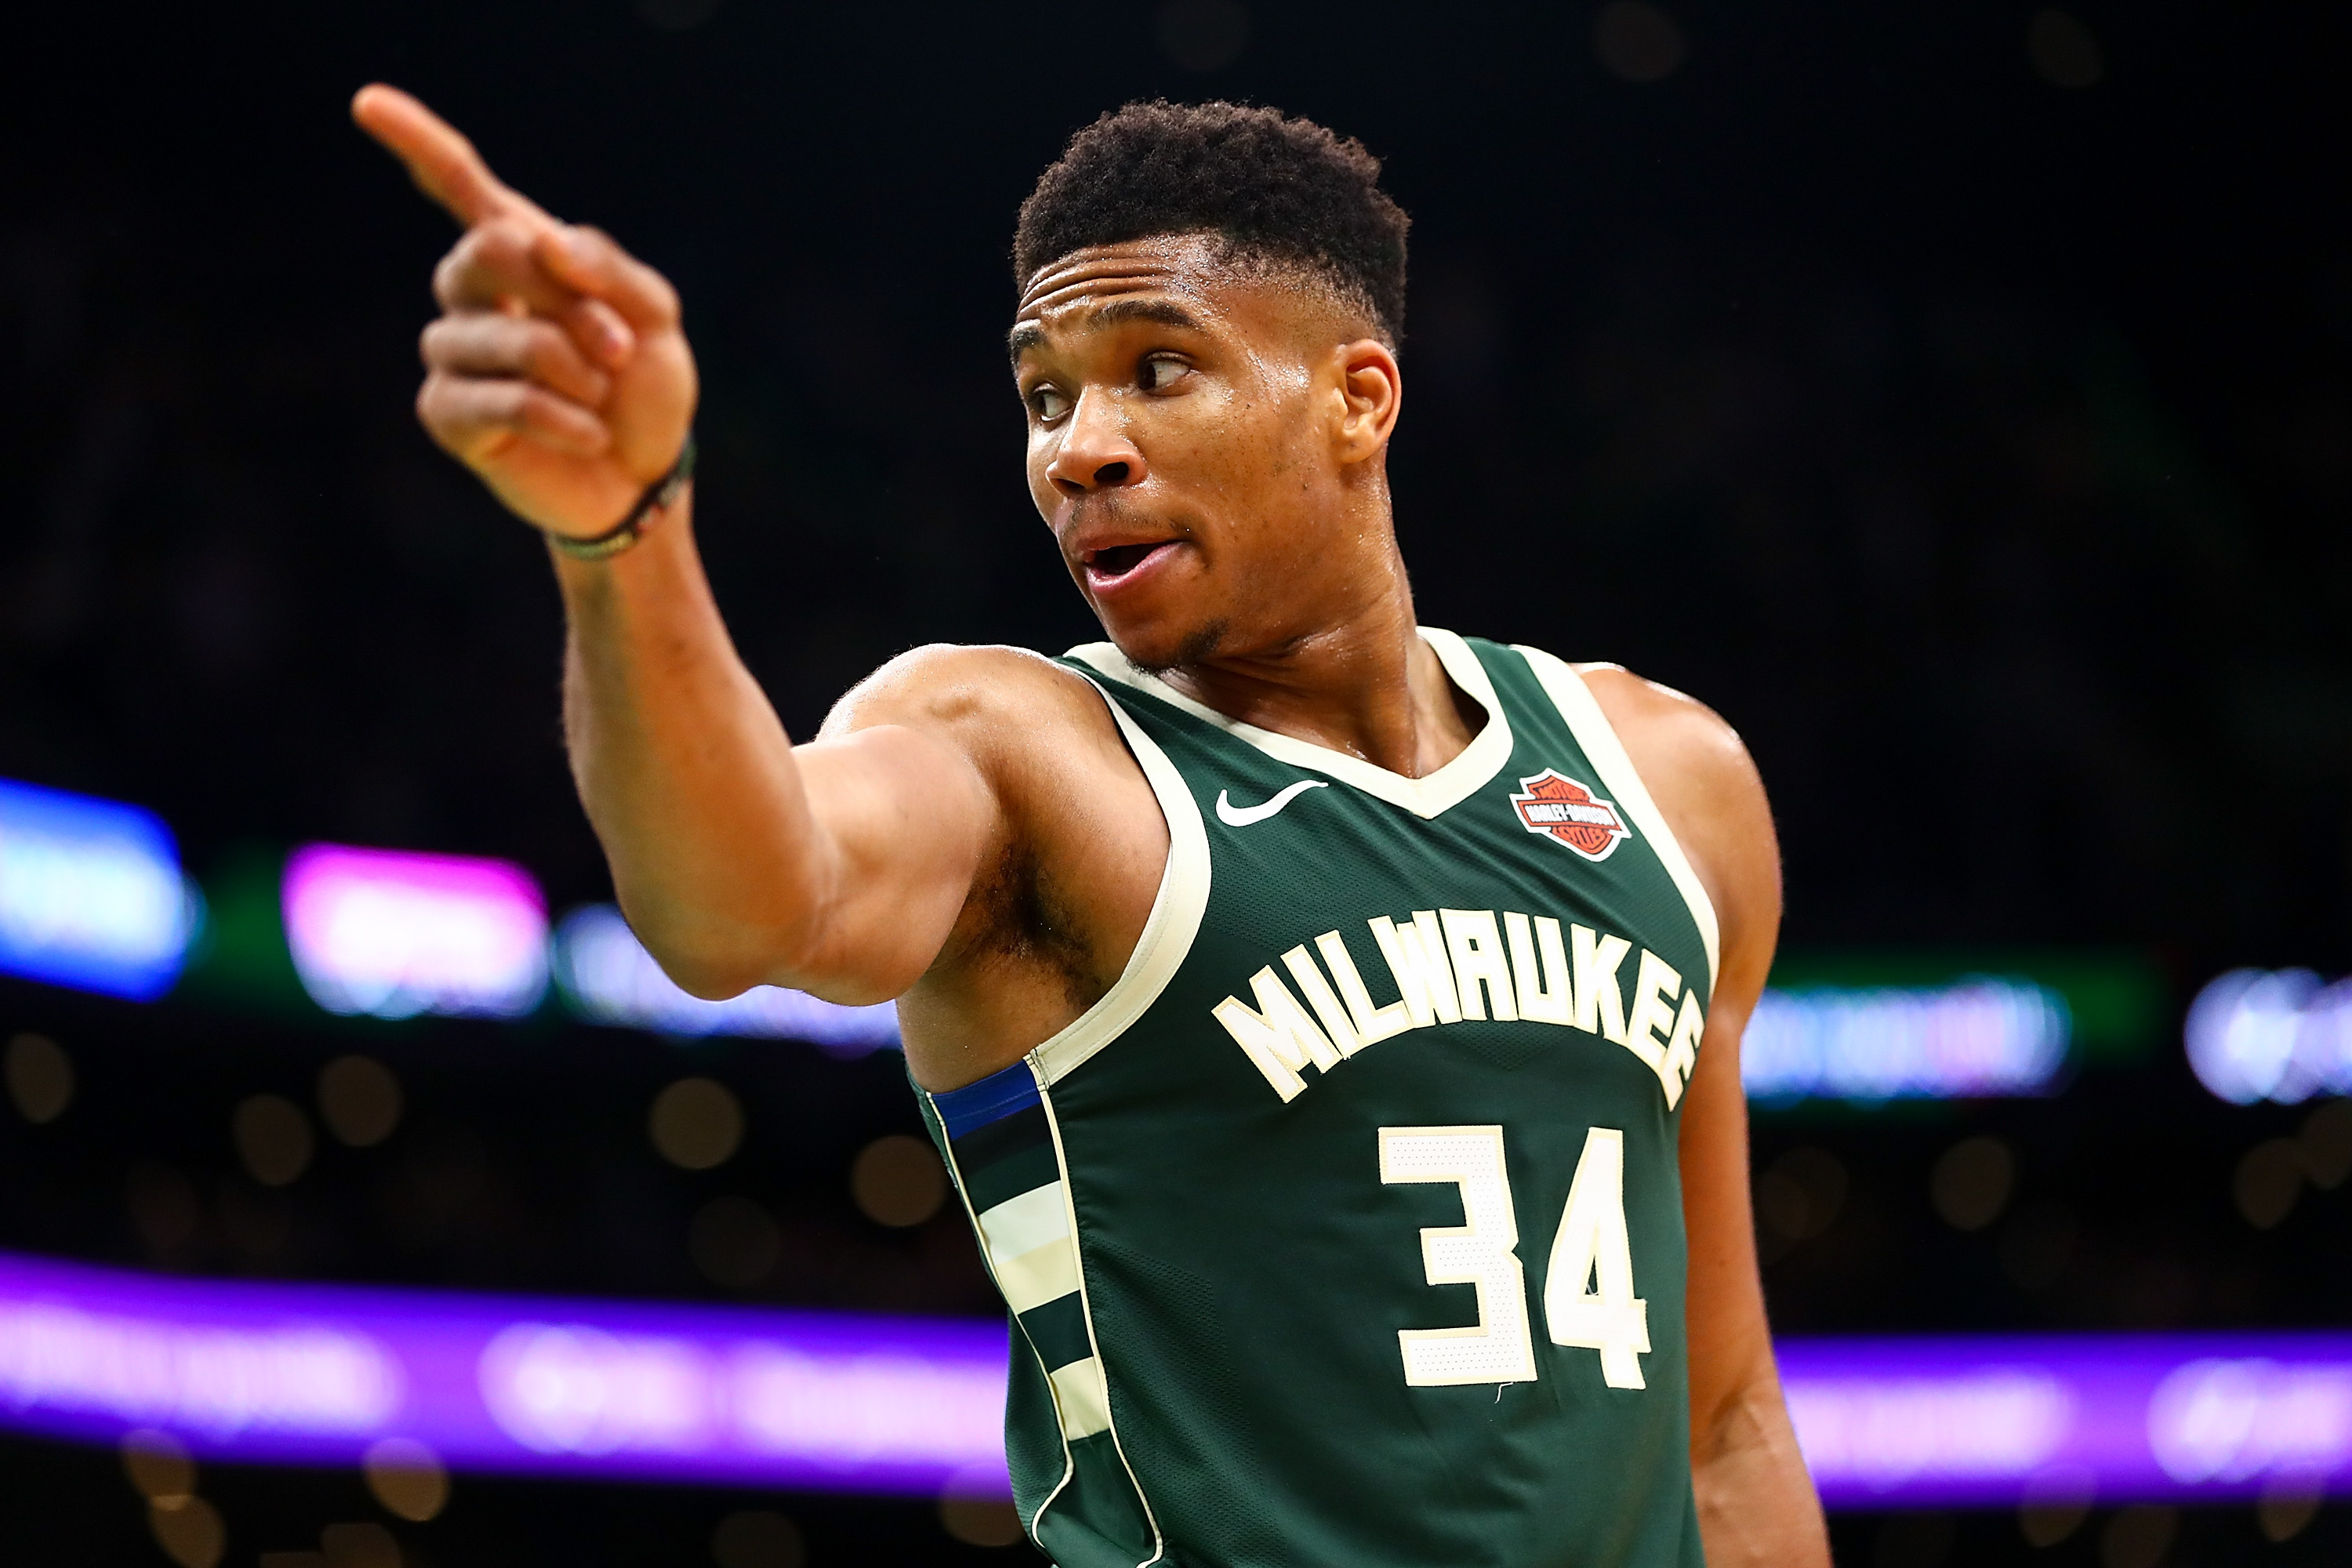 BOSTON, MA - OCTOBER 30:  Giannis Antetokounmpo #34 of the Milwaukee Bucks reacts during a game against the Boston Celtics at TD Garden on October 30, 2019 in Boston, Massachusetts. NOTE TO USER: User expressly acknowledges and agrees that, by downloading and or using this photograph, User is consenting to the terms and conditions of the Getty Images License Agreement. (Photo by Adam Glanzman/Getty Images)